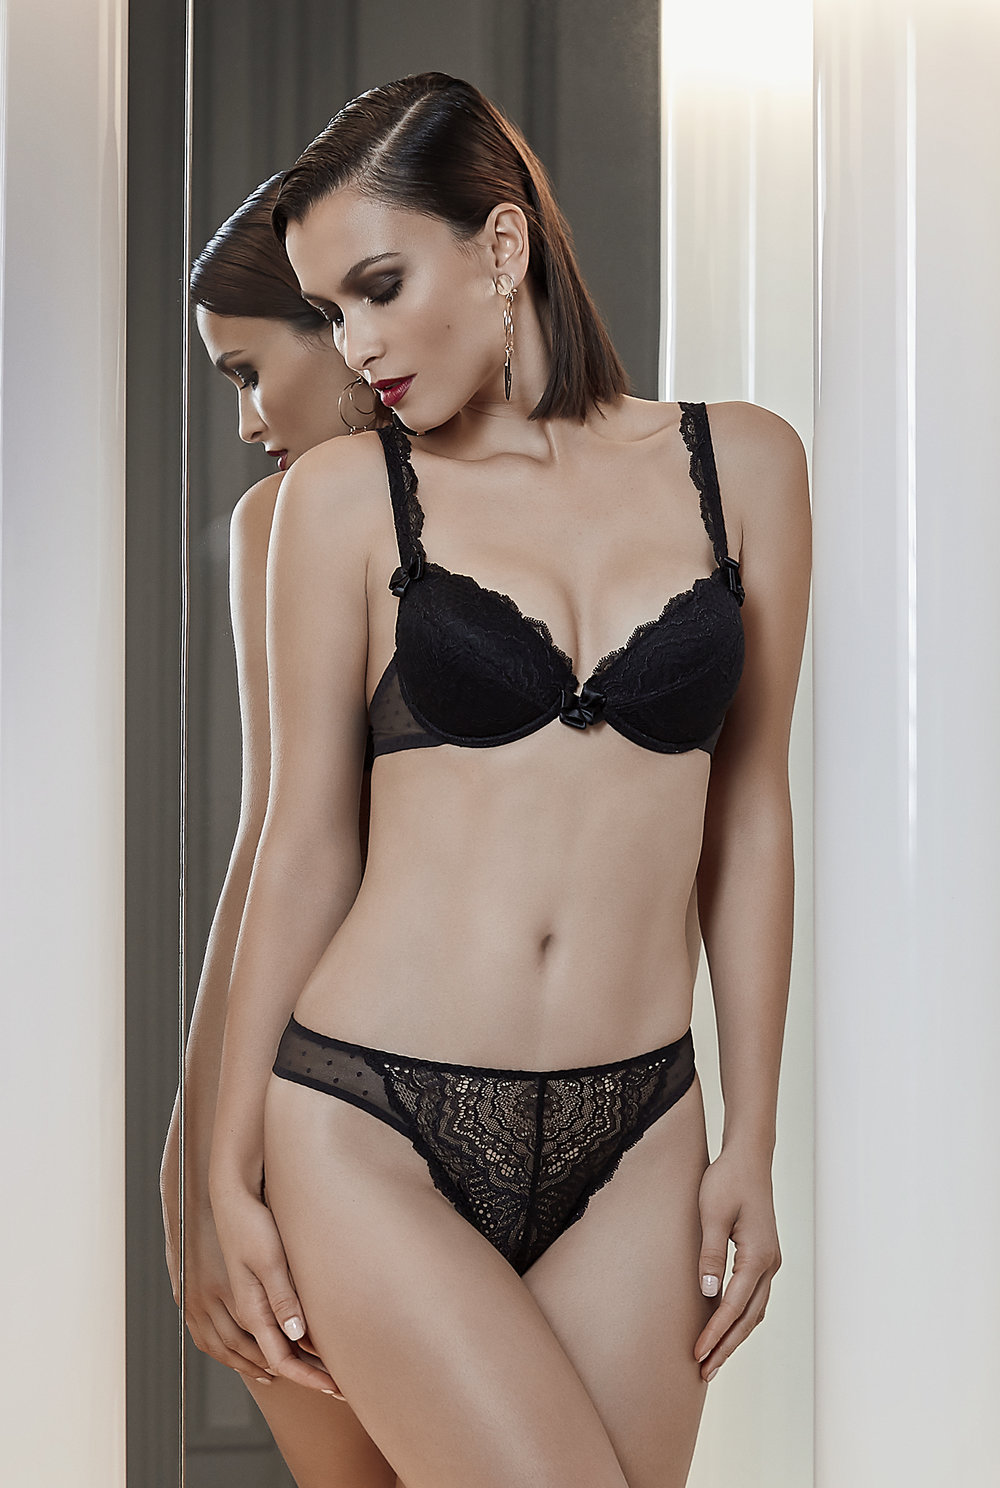 Désir d'un Soir   push-up amplimousse (with removable coussinets), sizes 85 to 90 a ; 85 to 95 b; 85 to 90 c ; 95 c : $73  String, sizes 38 to 46 : $39